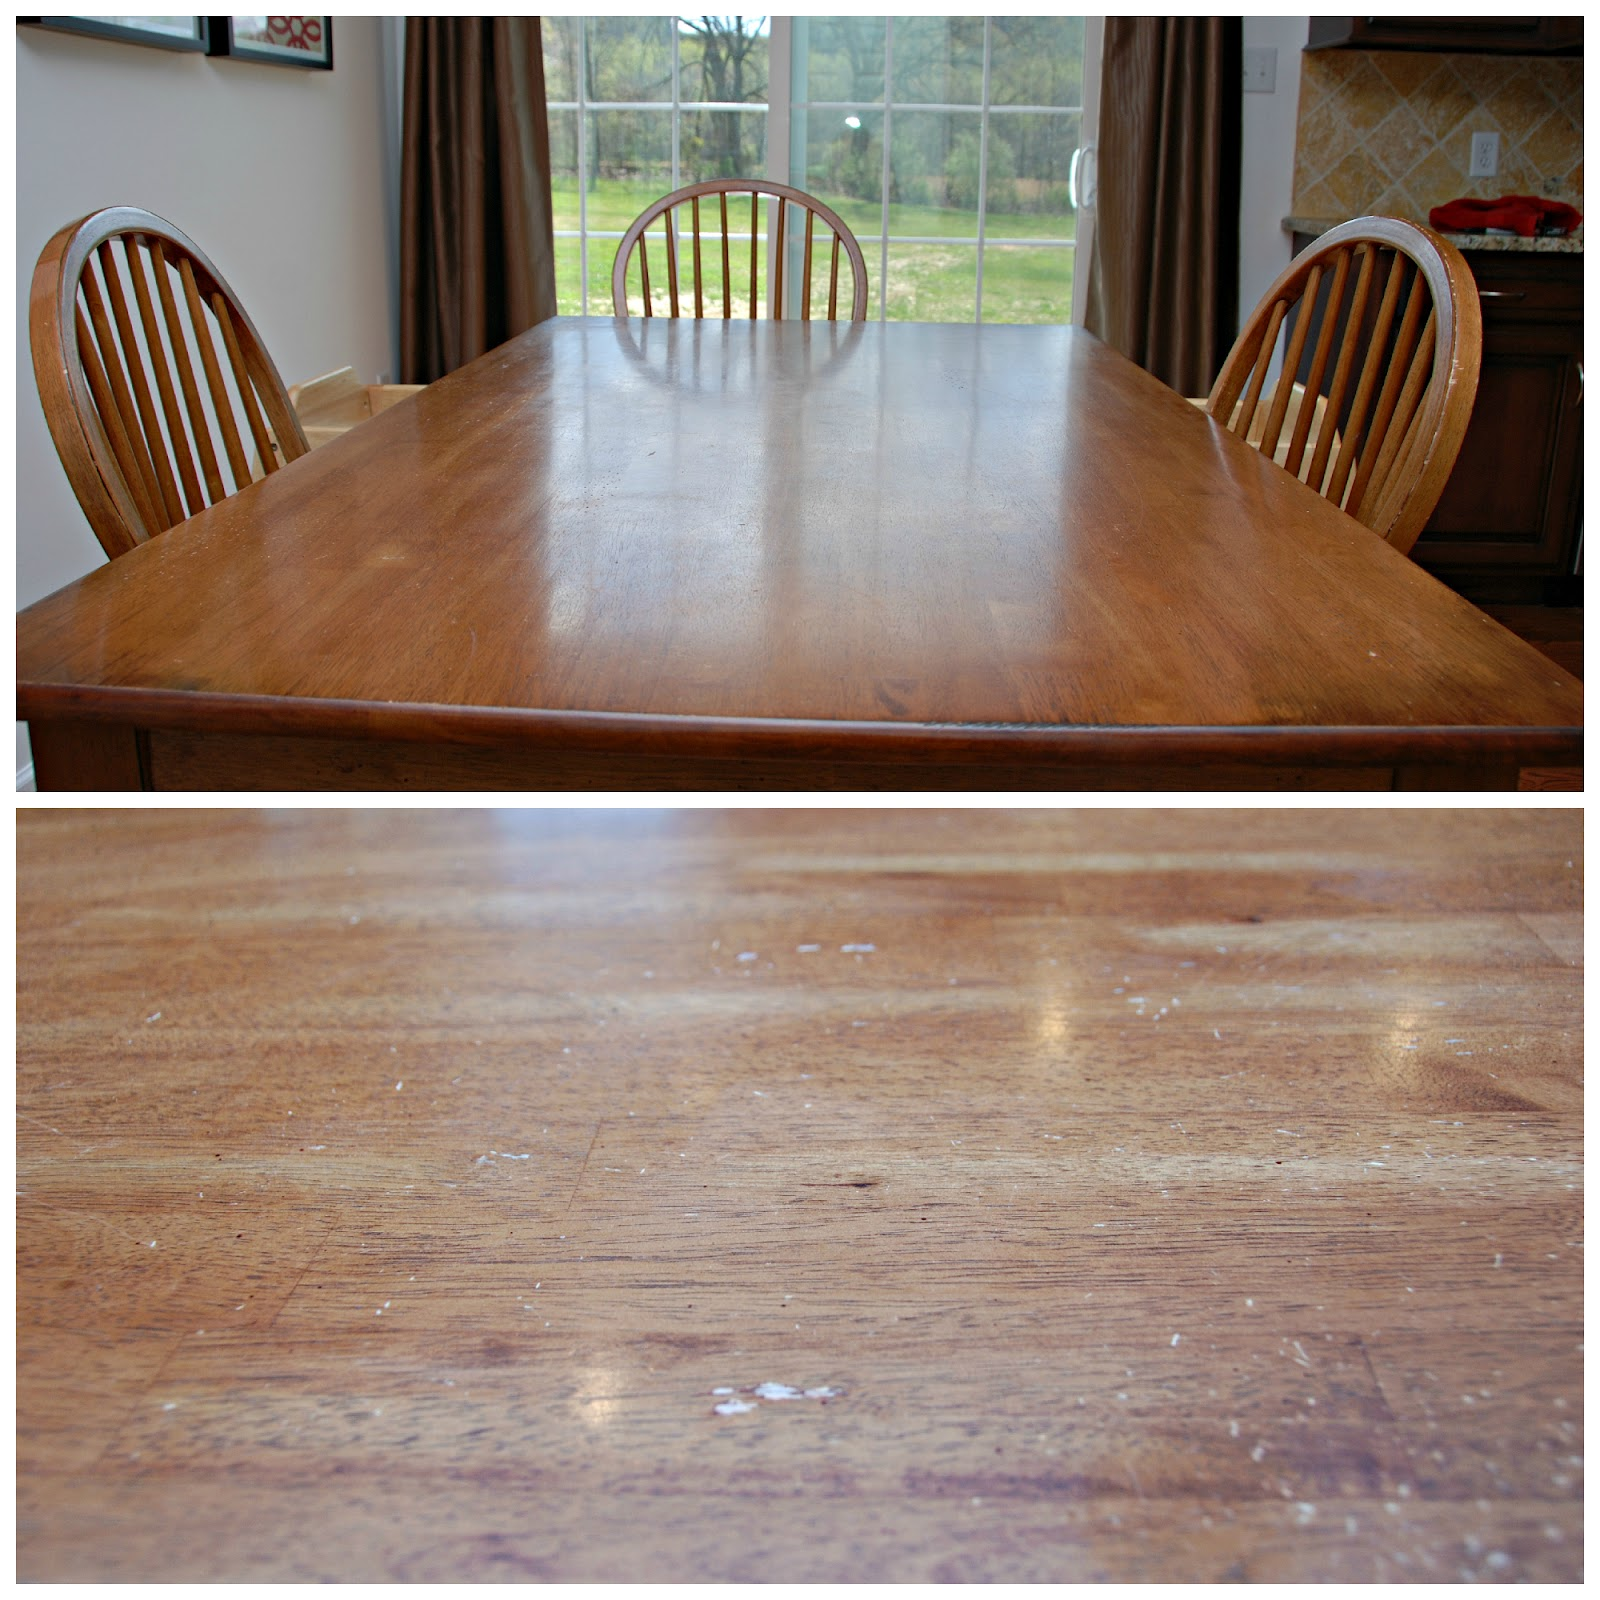 One Creative Housewife: Refinished Kitchen Table